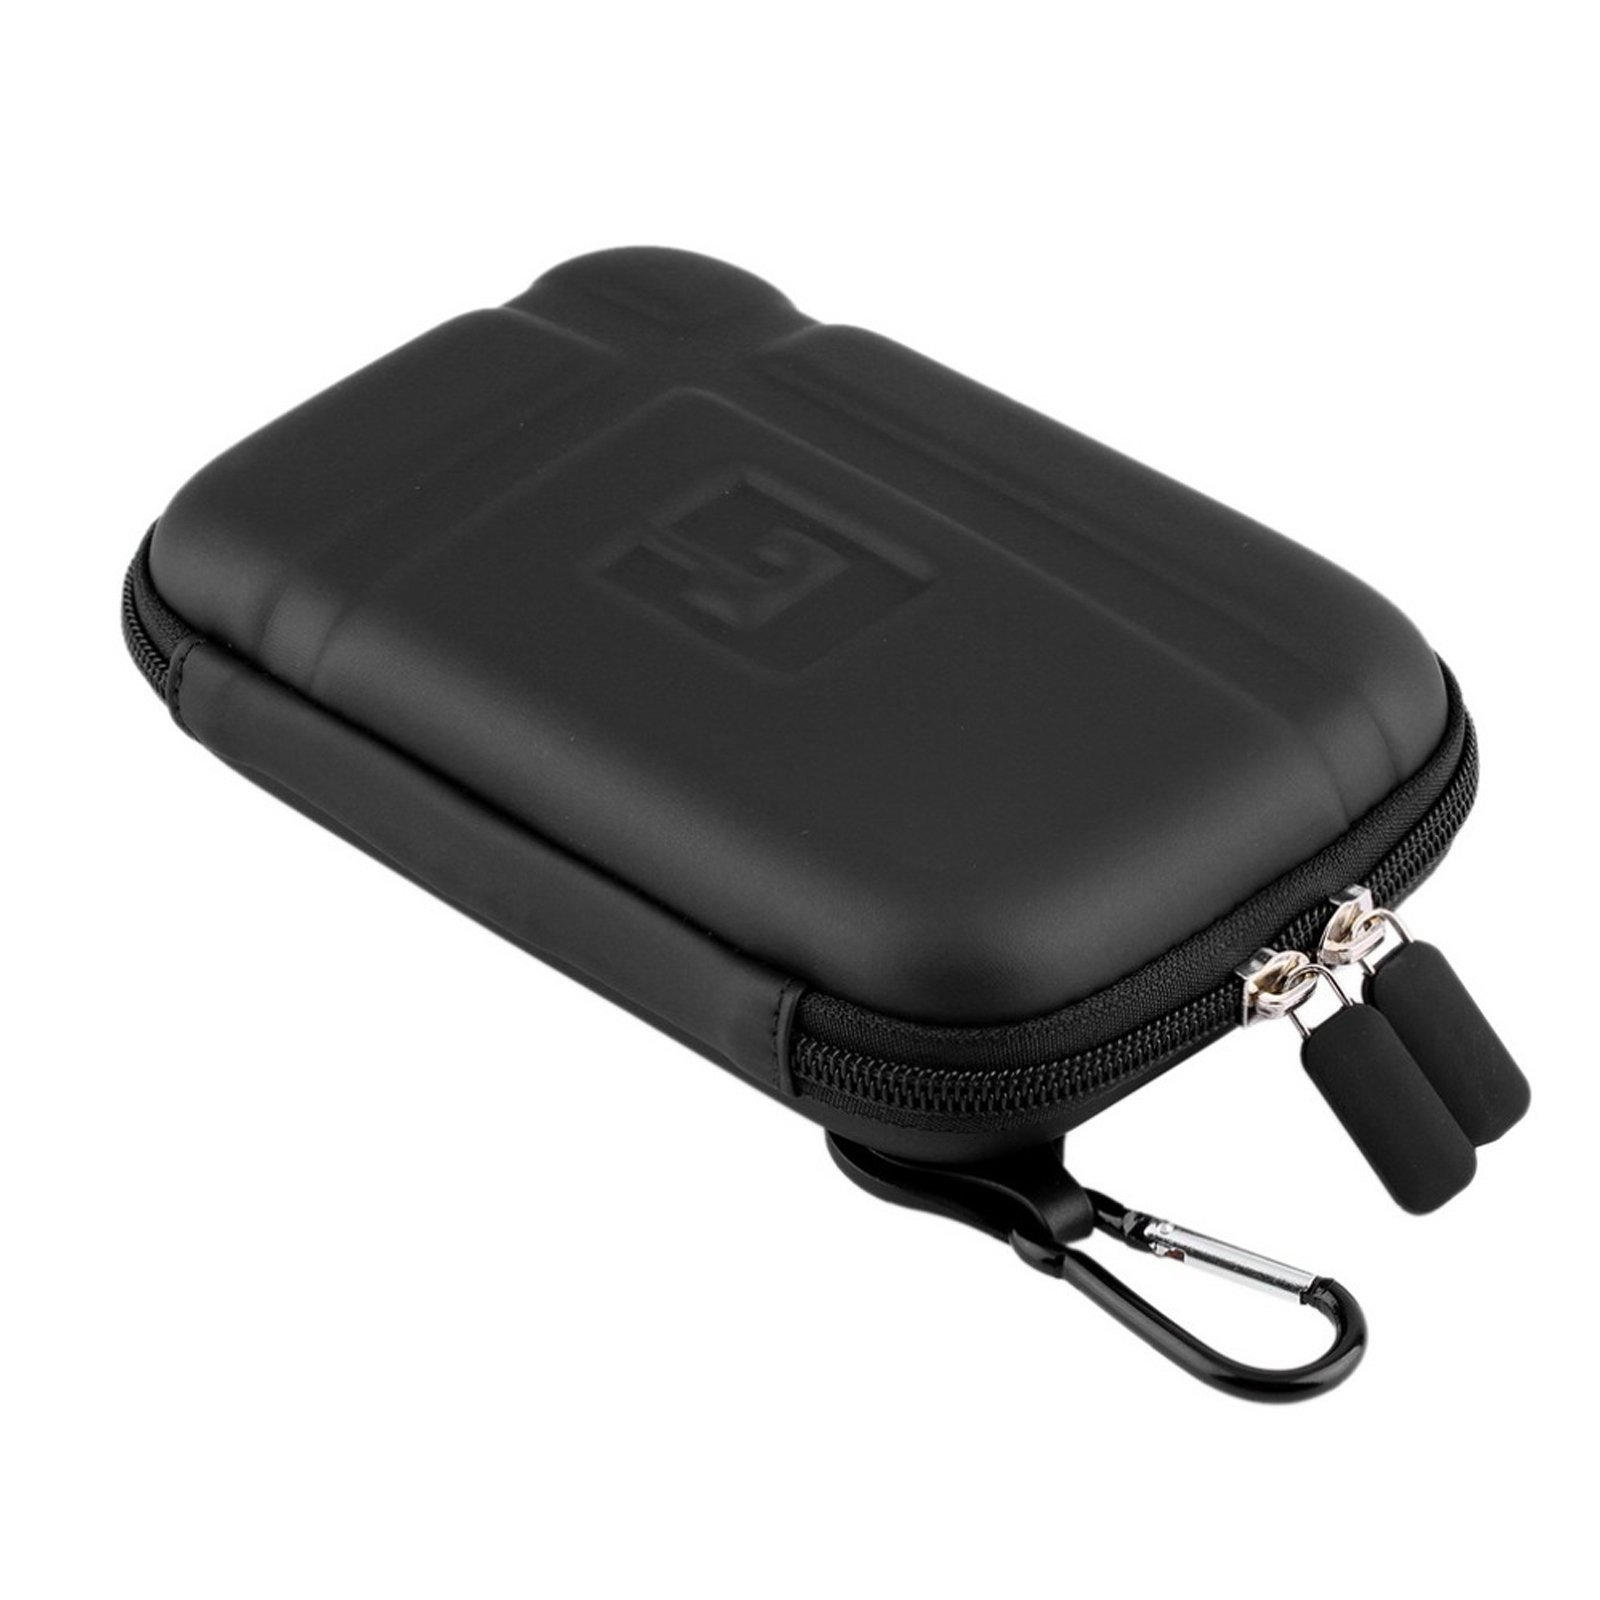 5'' Inch Hard Carrying Case Travel GPS Protective Bag Cover Pouch Shell Zipper Case For 5'' 5.2'' TomTom Garmin Nuvi Magellan RoadMate Tomtom GPS Devices Black